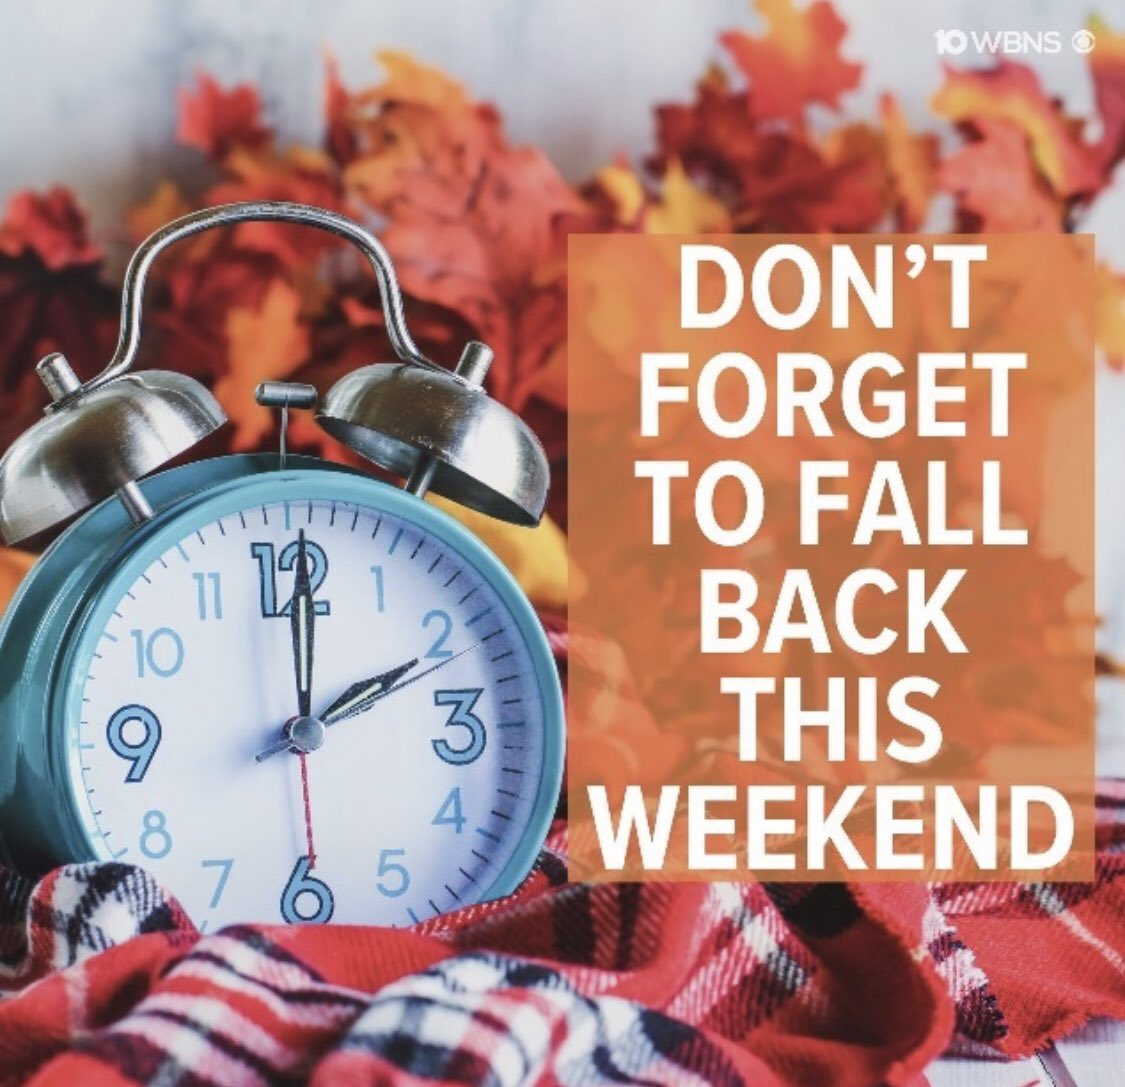 Whether you want an extra hour of 2020 or not... 😏 #FallBack #10TV https://t.co/1cHlcYhPBR